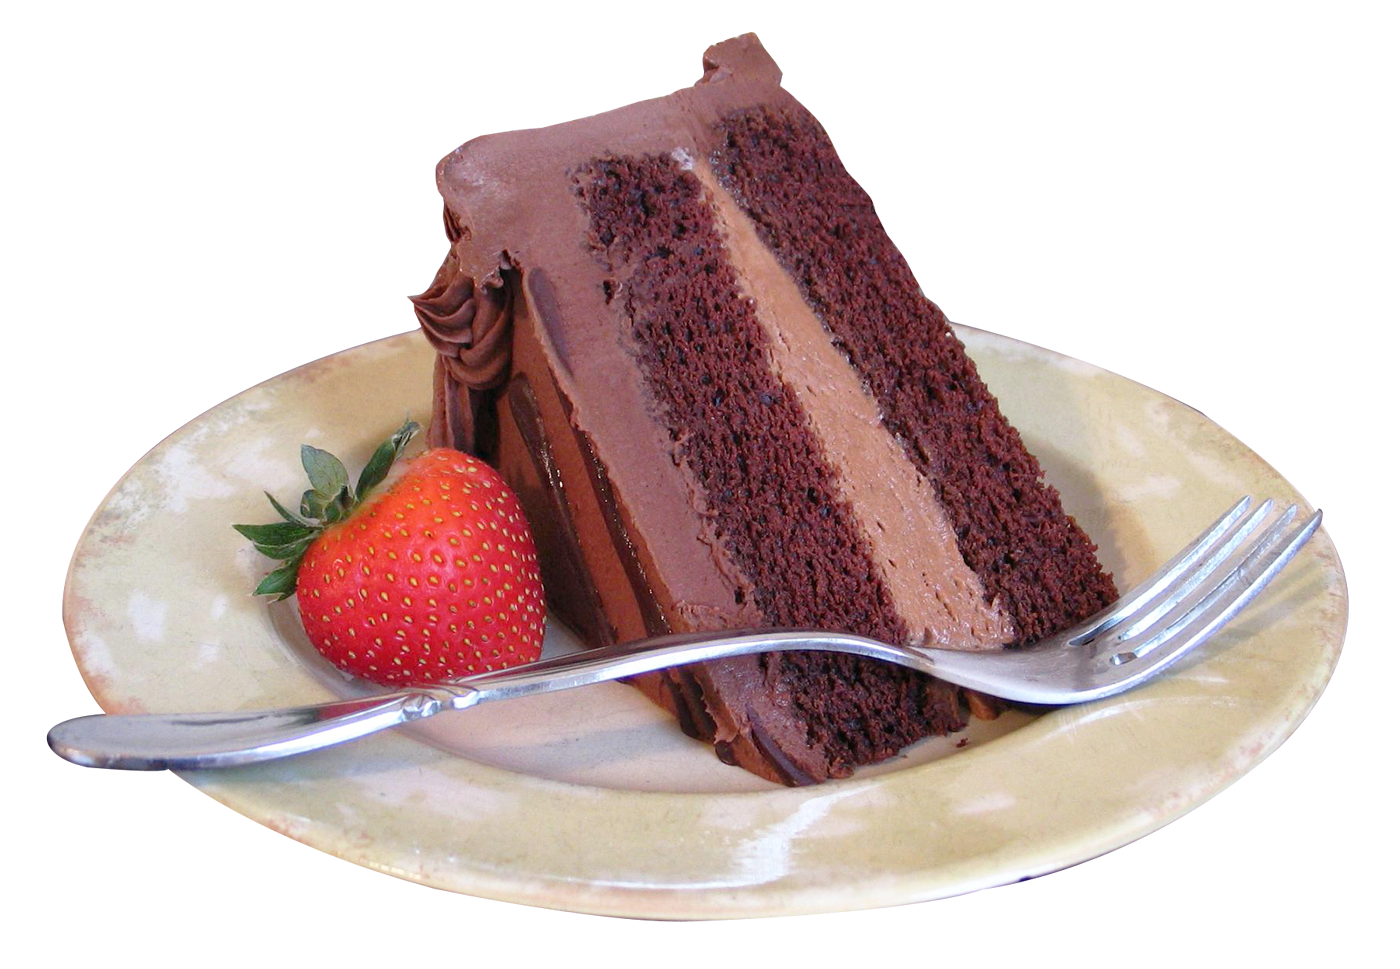 Slice of cake png. Image purepng free transparent